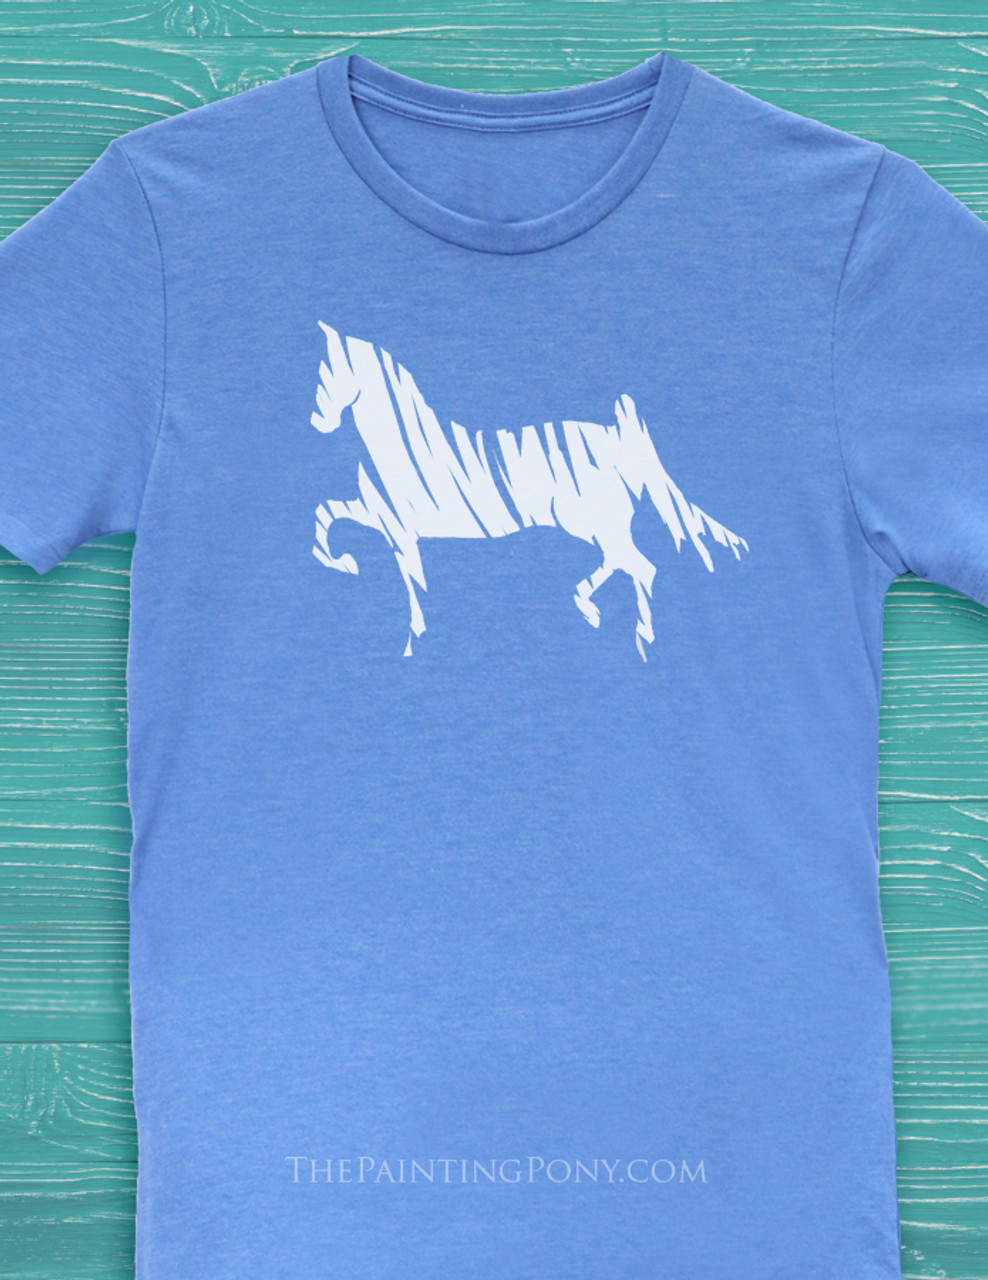 19adceb8 Saddlebred Horse Lover Adult T-Shirt - The Painting Pony